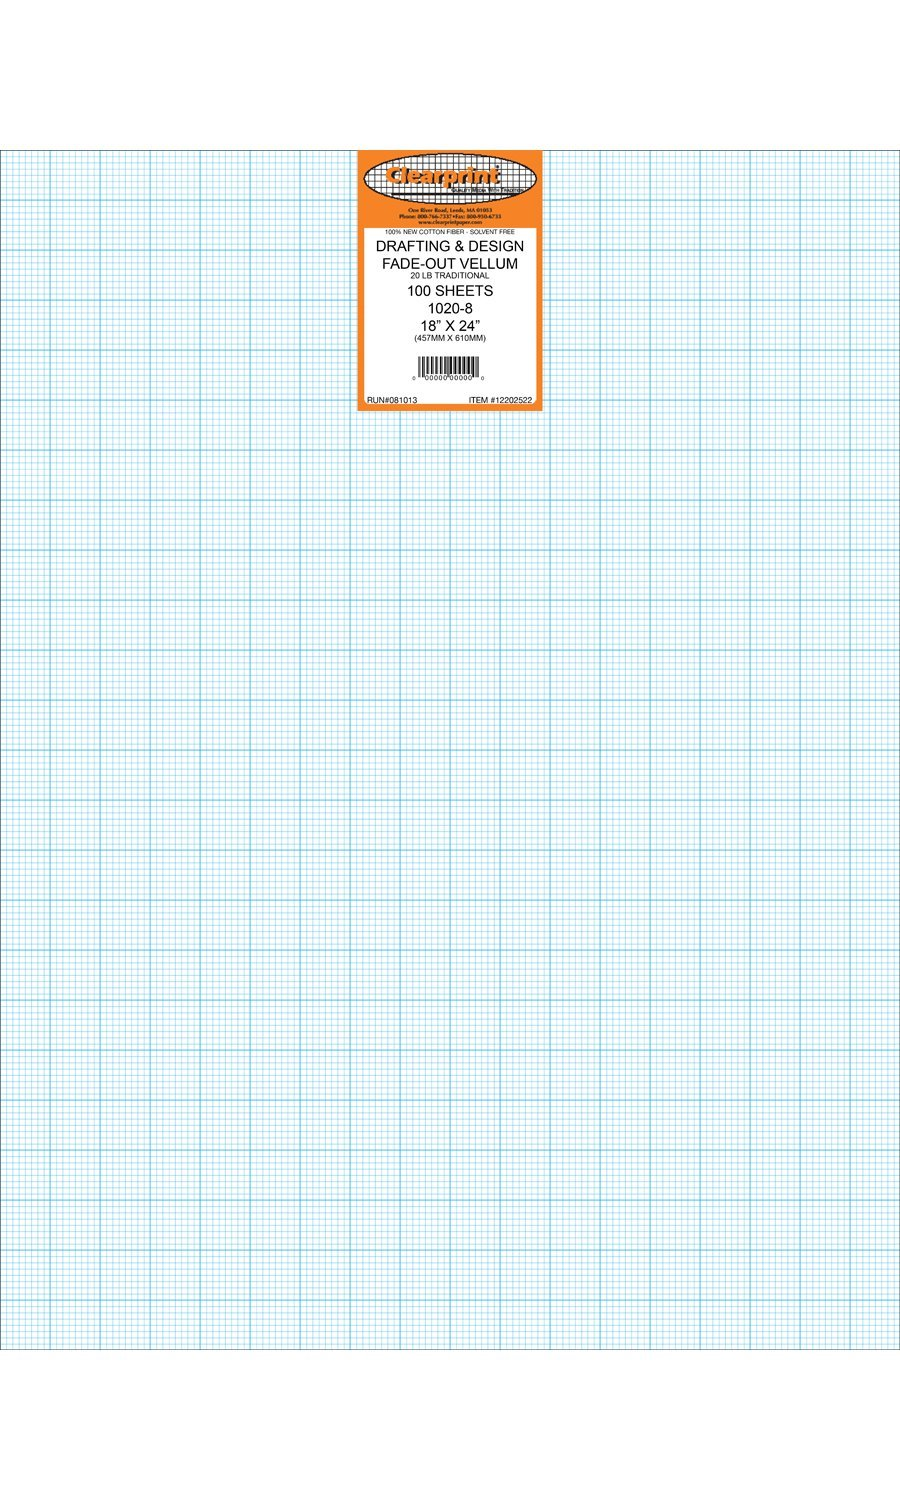 Clearprint 1020H Design Vellum Sheets with Printed Fade-Out 8x8 Grid, 20 Lb., 100% Cotton, 18 x 24 Inches, 100 Sheets Per Pack, 1 Each (12202522)